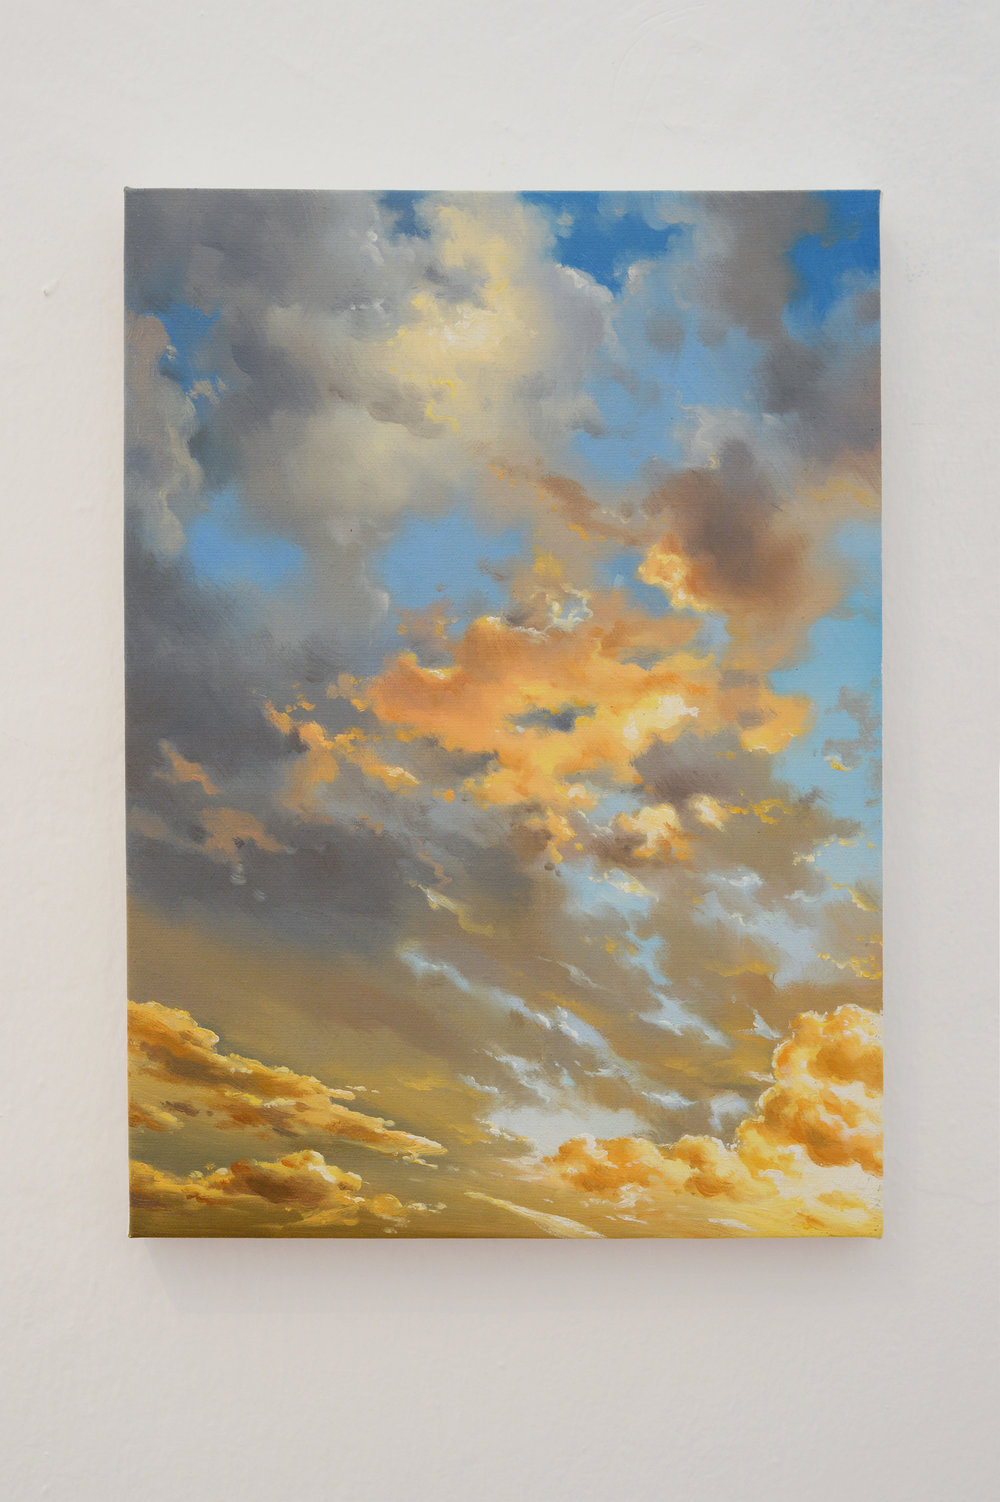 Cielo (Dafen), Oil on canvas, 33 x 46 cm, 2017